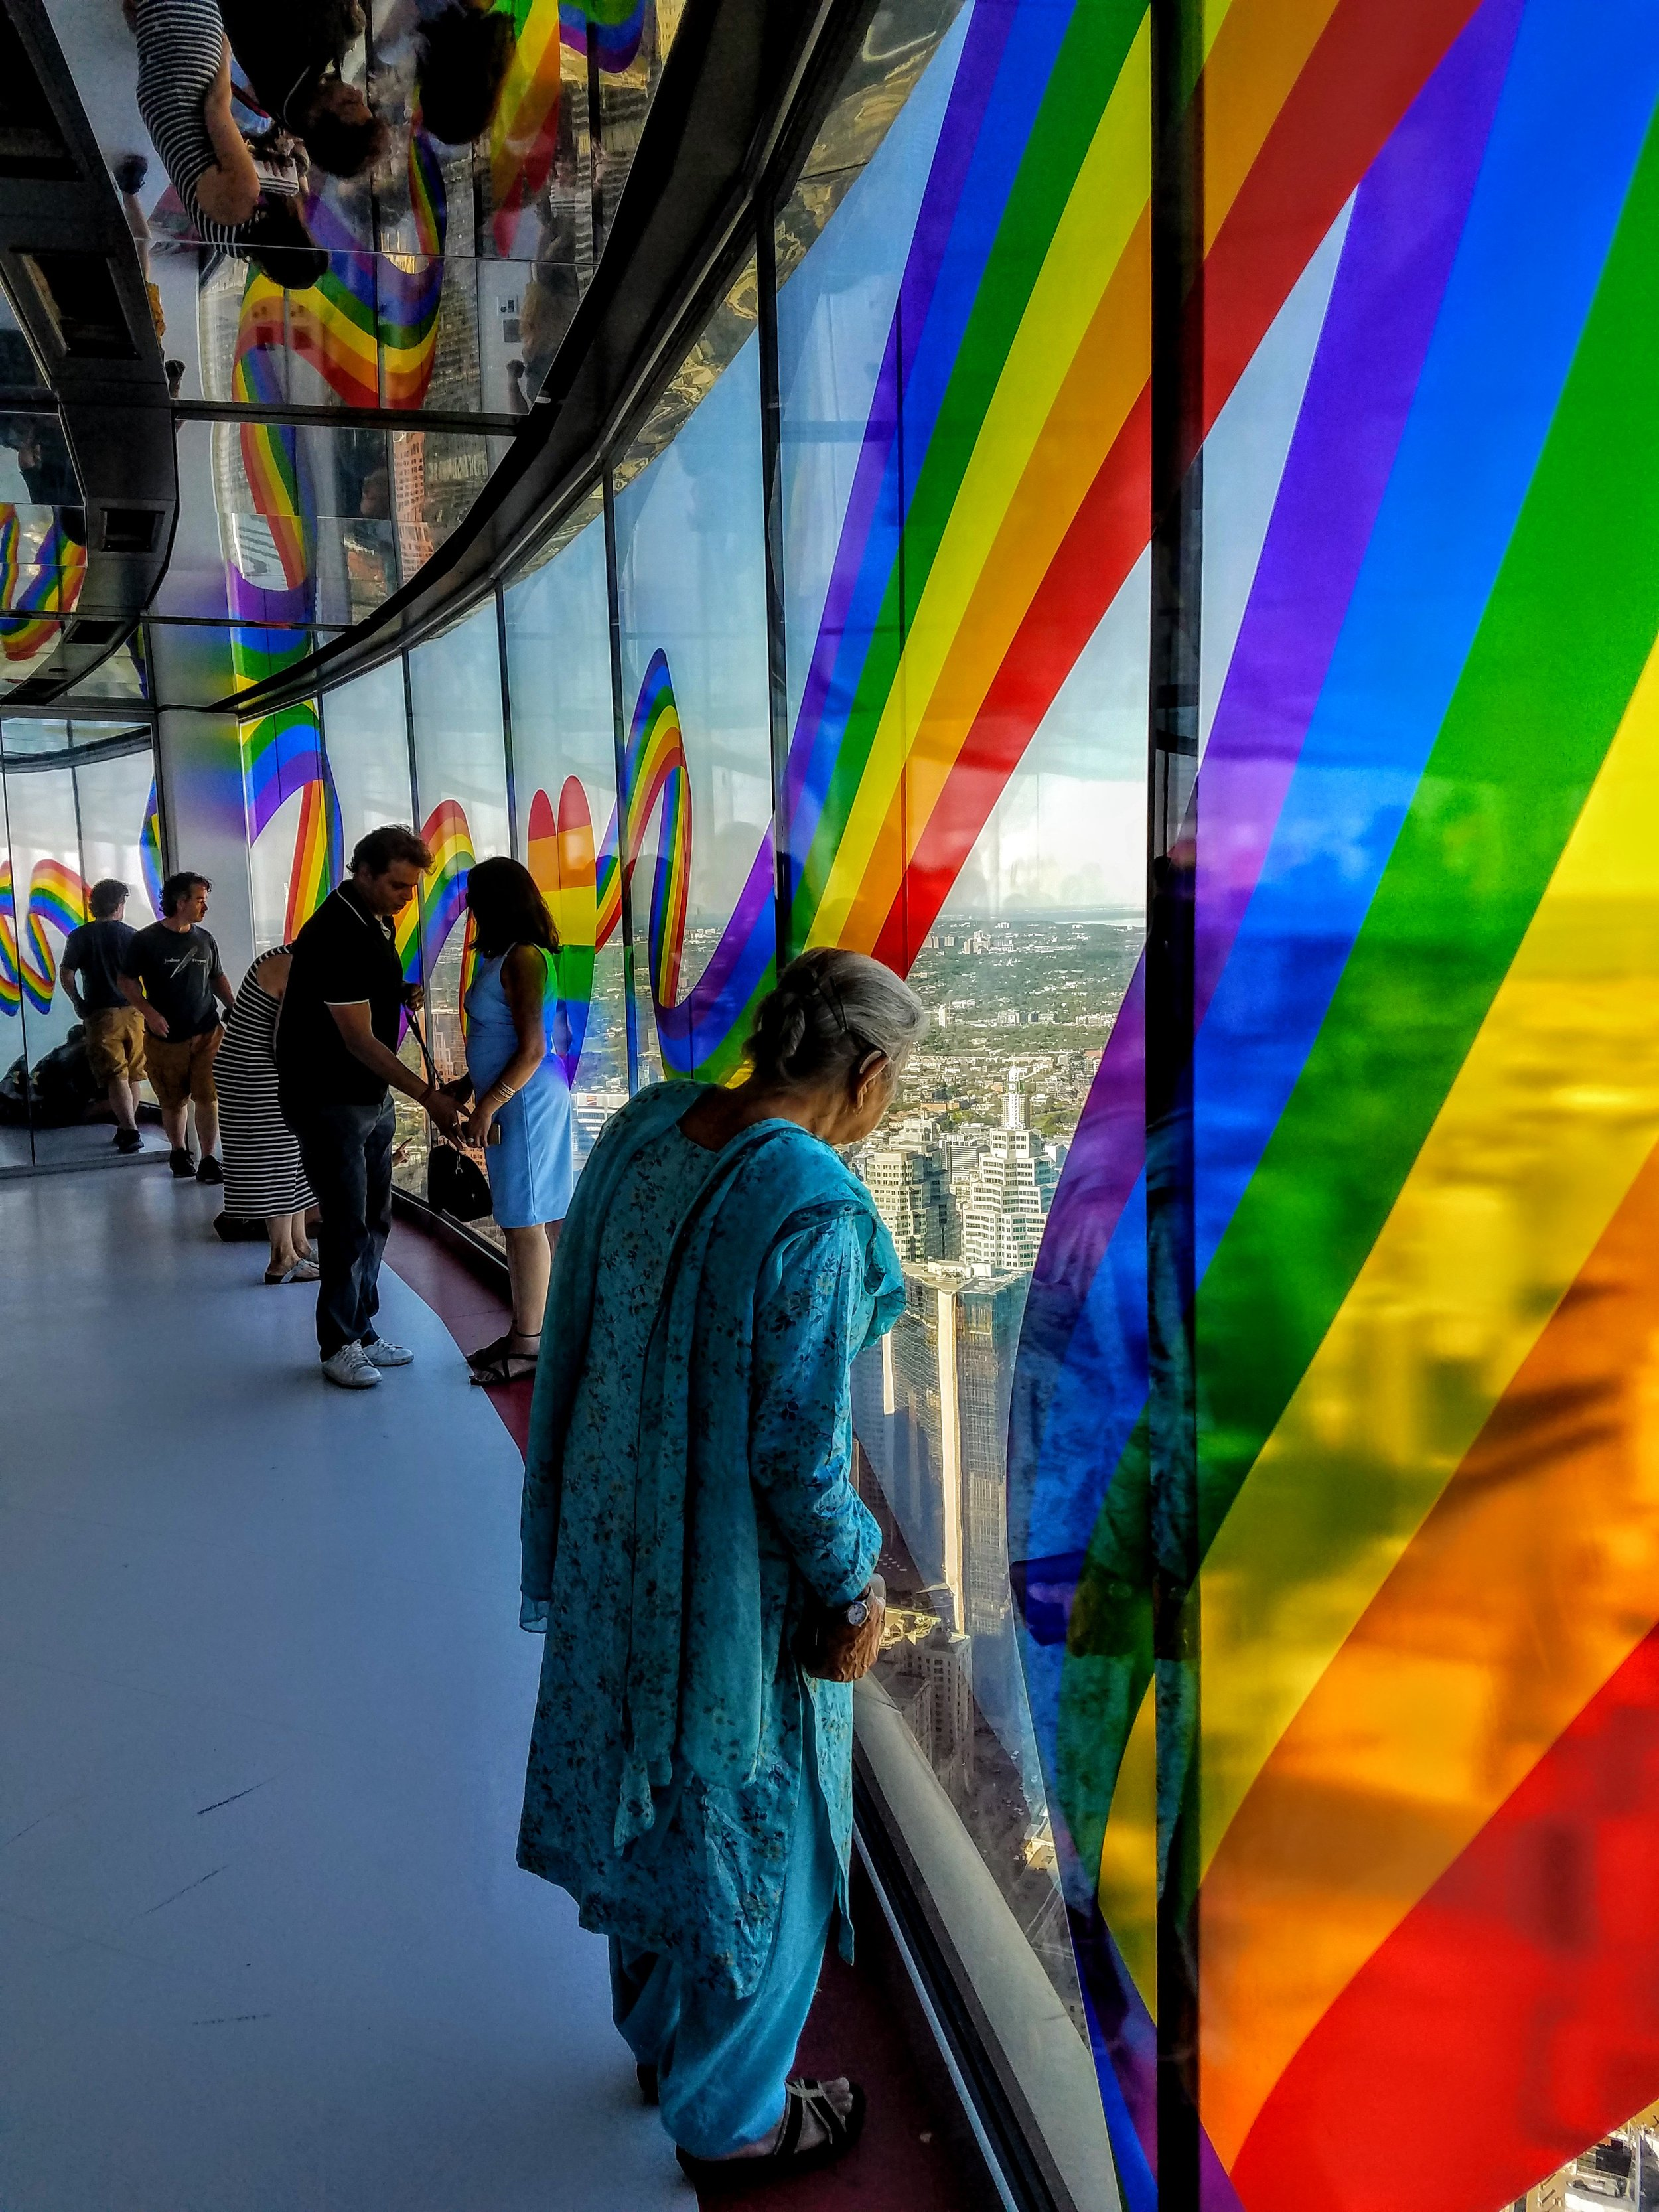 Pride and diversity in the CN Tower